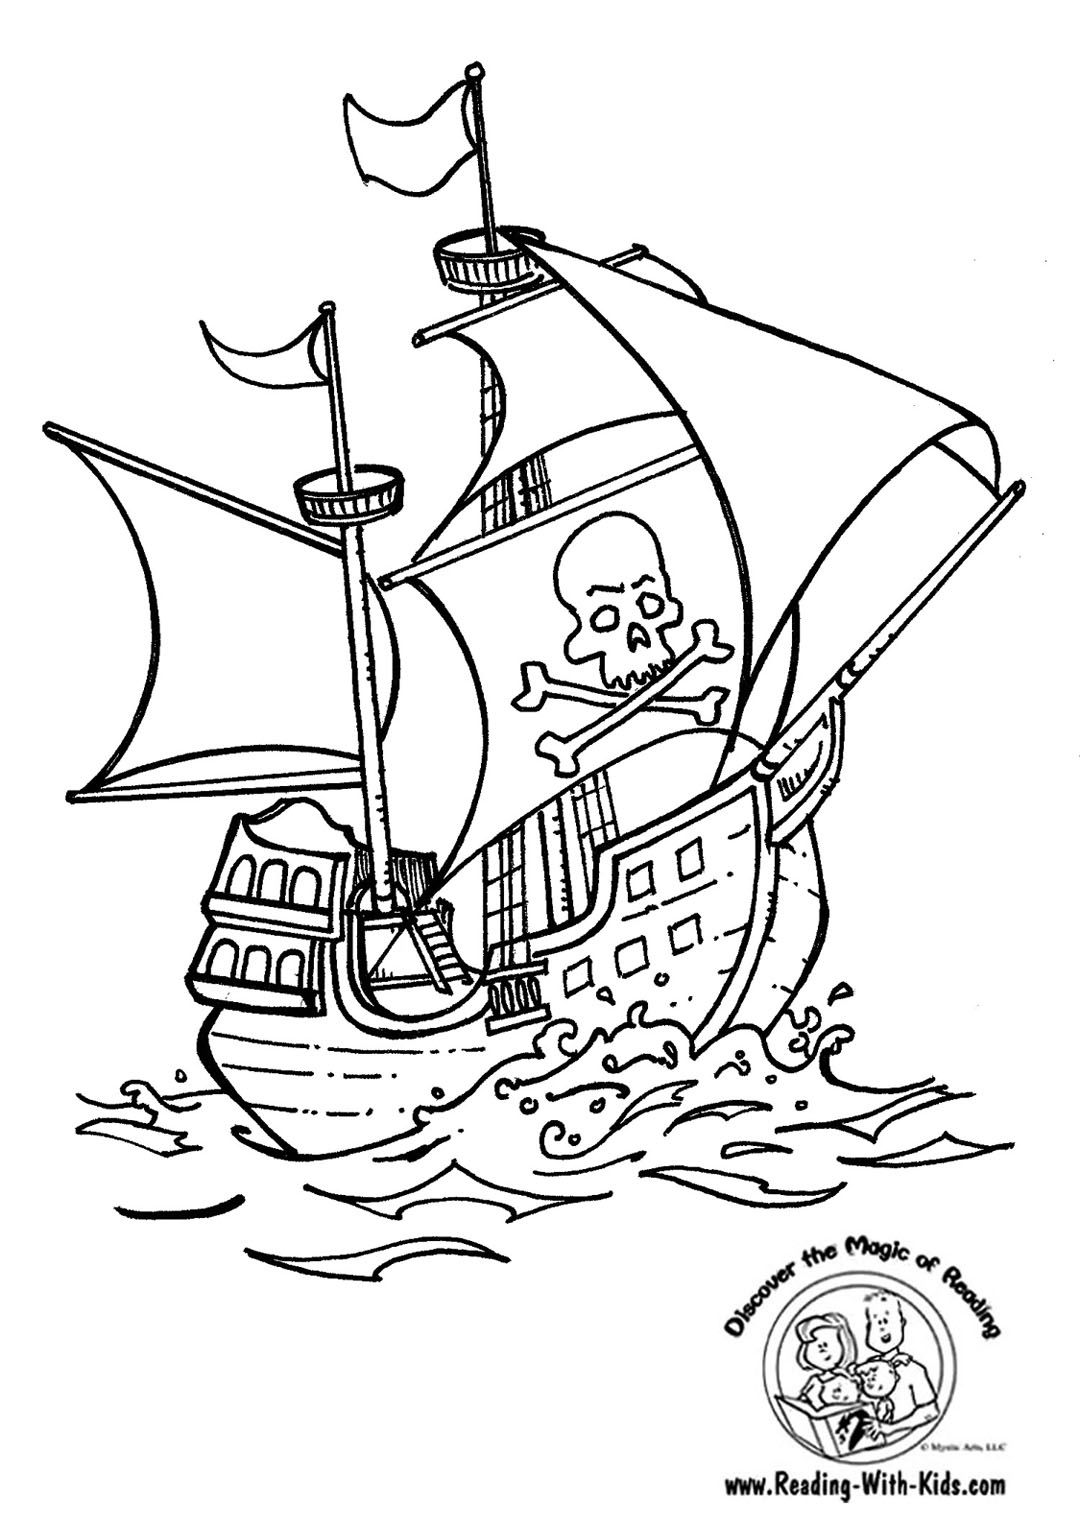 Pirate Ship Coloring Page Pirate Coloring Pages Pirate Pictures